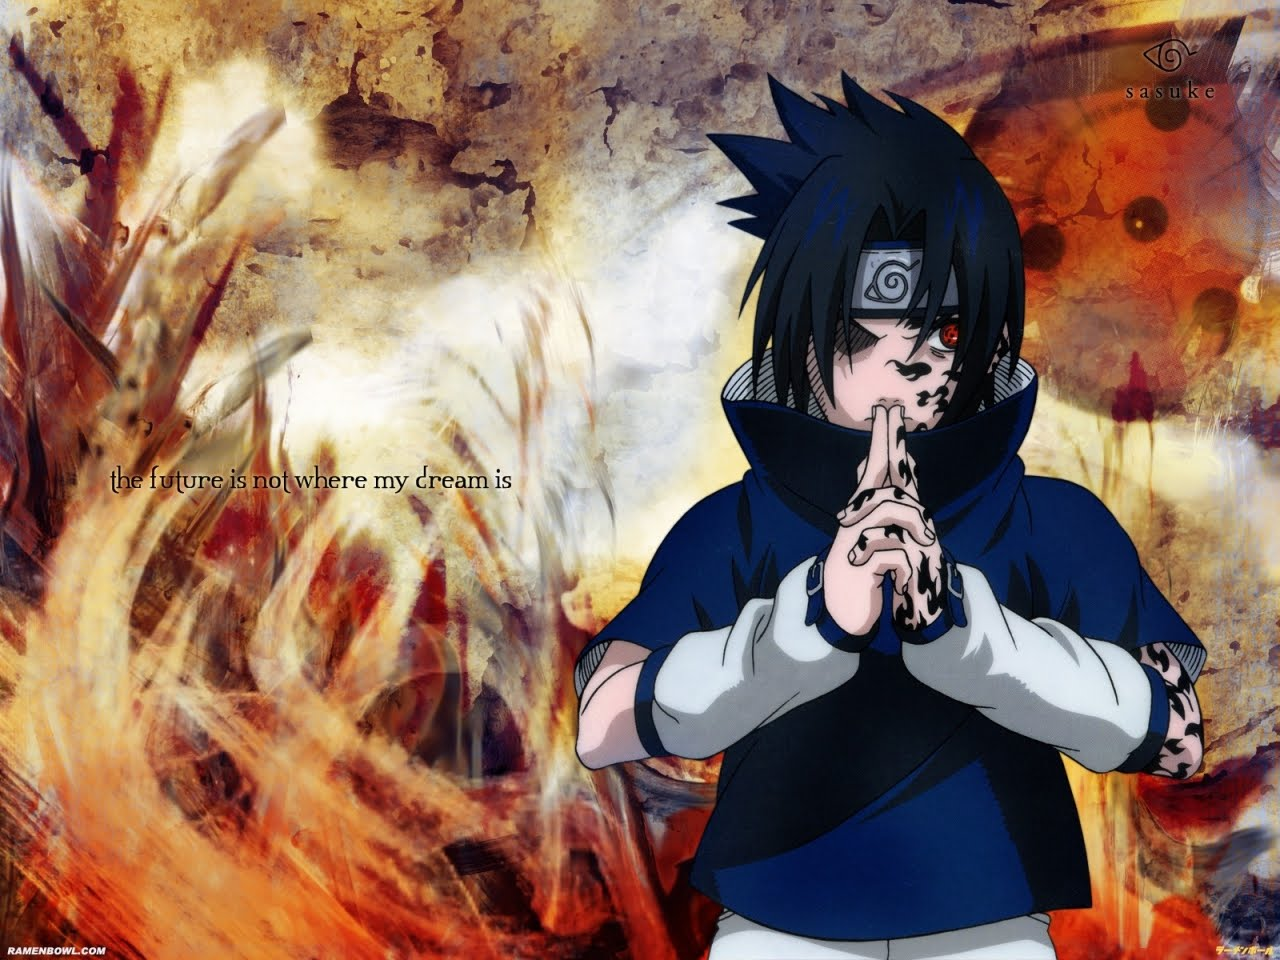 Cool Wallpaper Naruto High Resolution - The-best-top-hd-desktop-naruto-shippuden-wallpaper-naruto-shippuden-wallpapers-hd-24  Photograph_866551.jpg